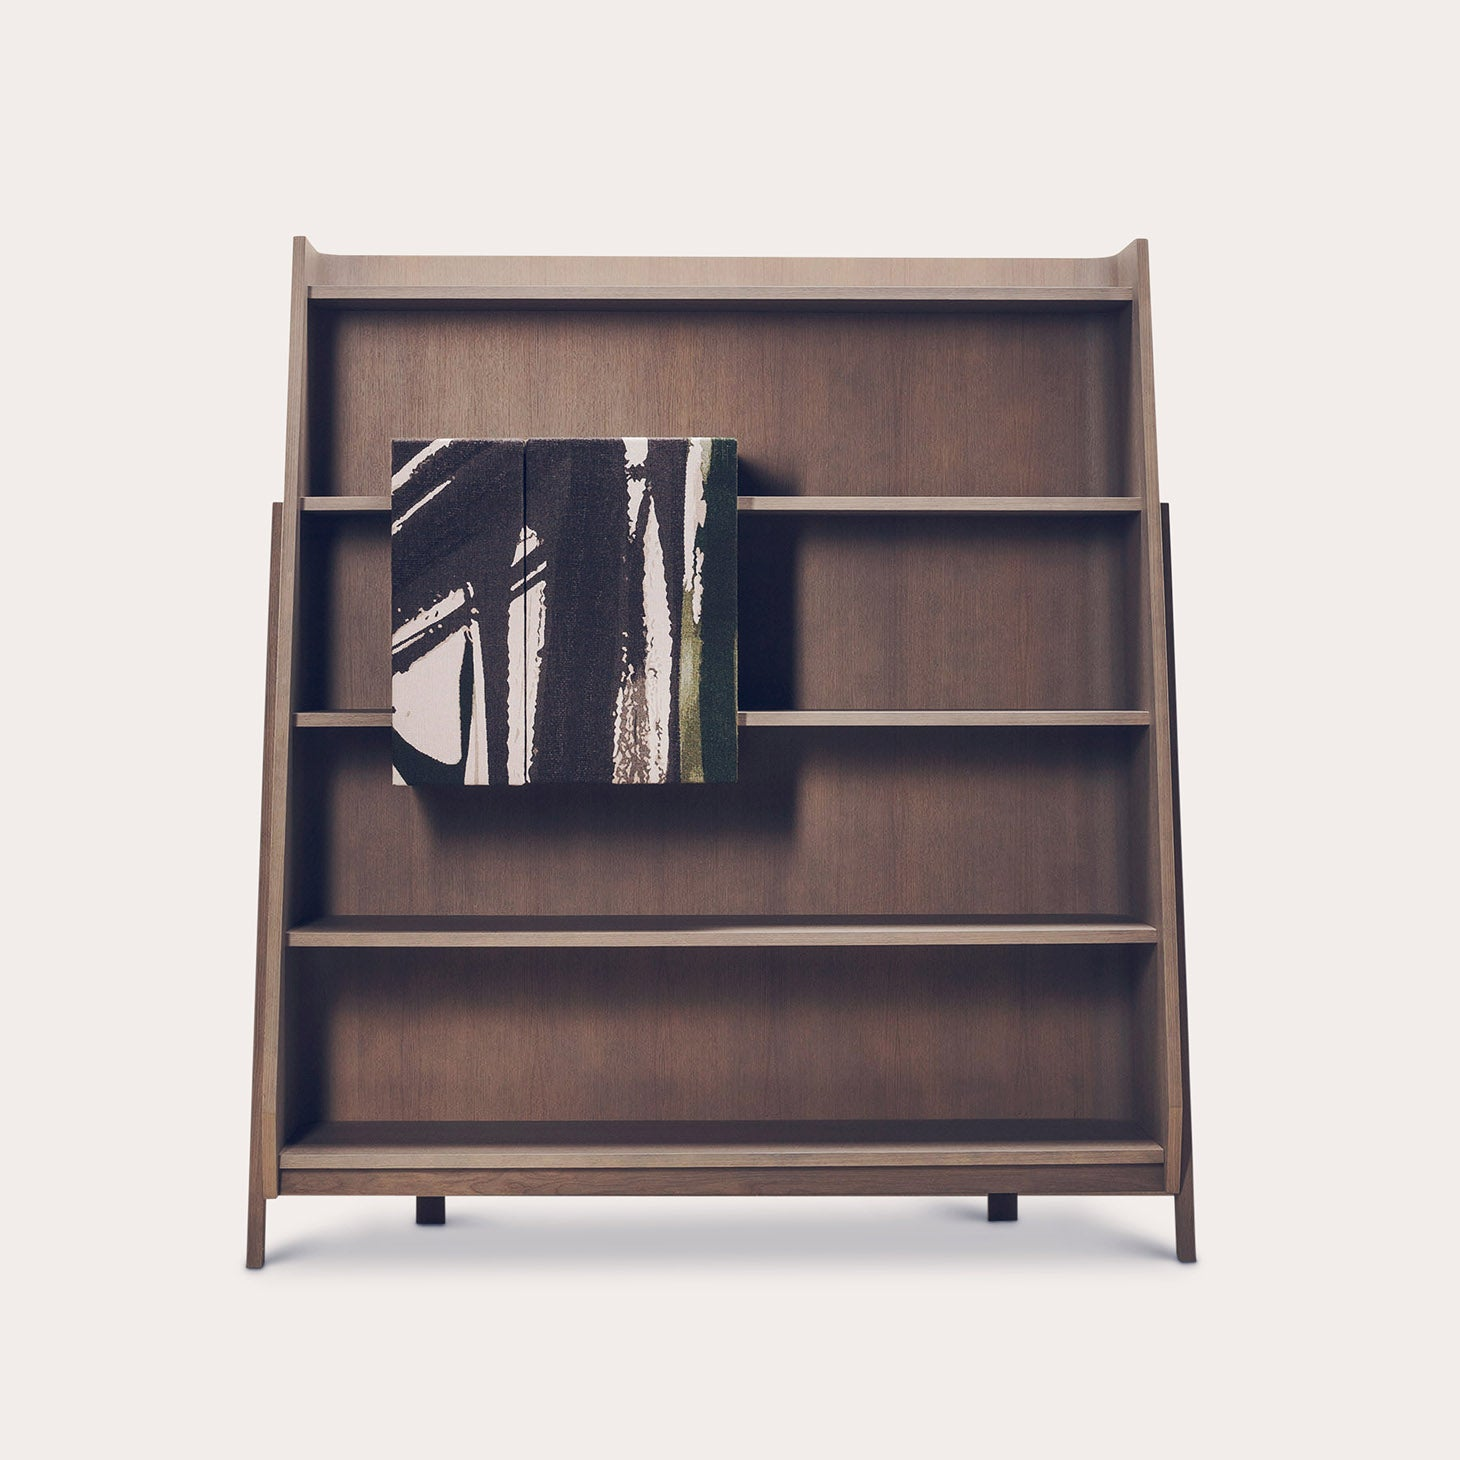 BELEM Storage Bruno Moinard Designer Furniture Sku: 773-220-10003